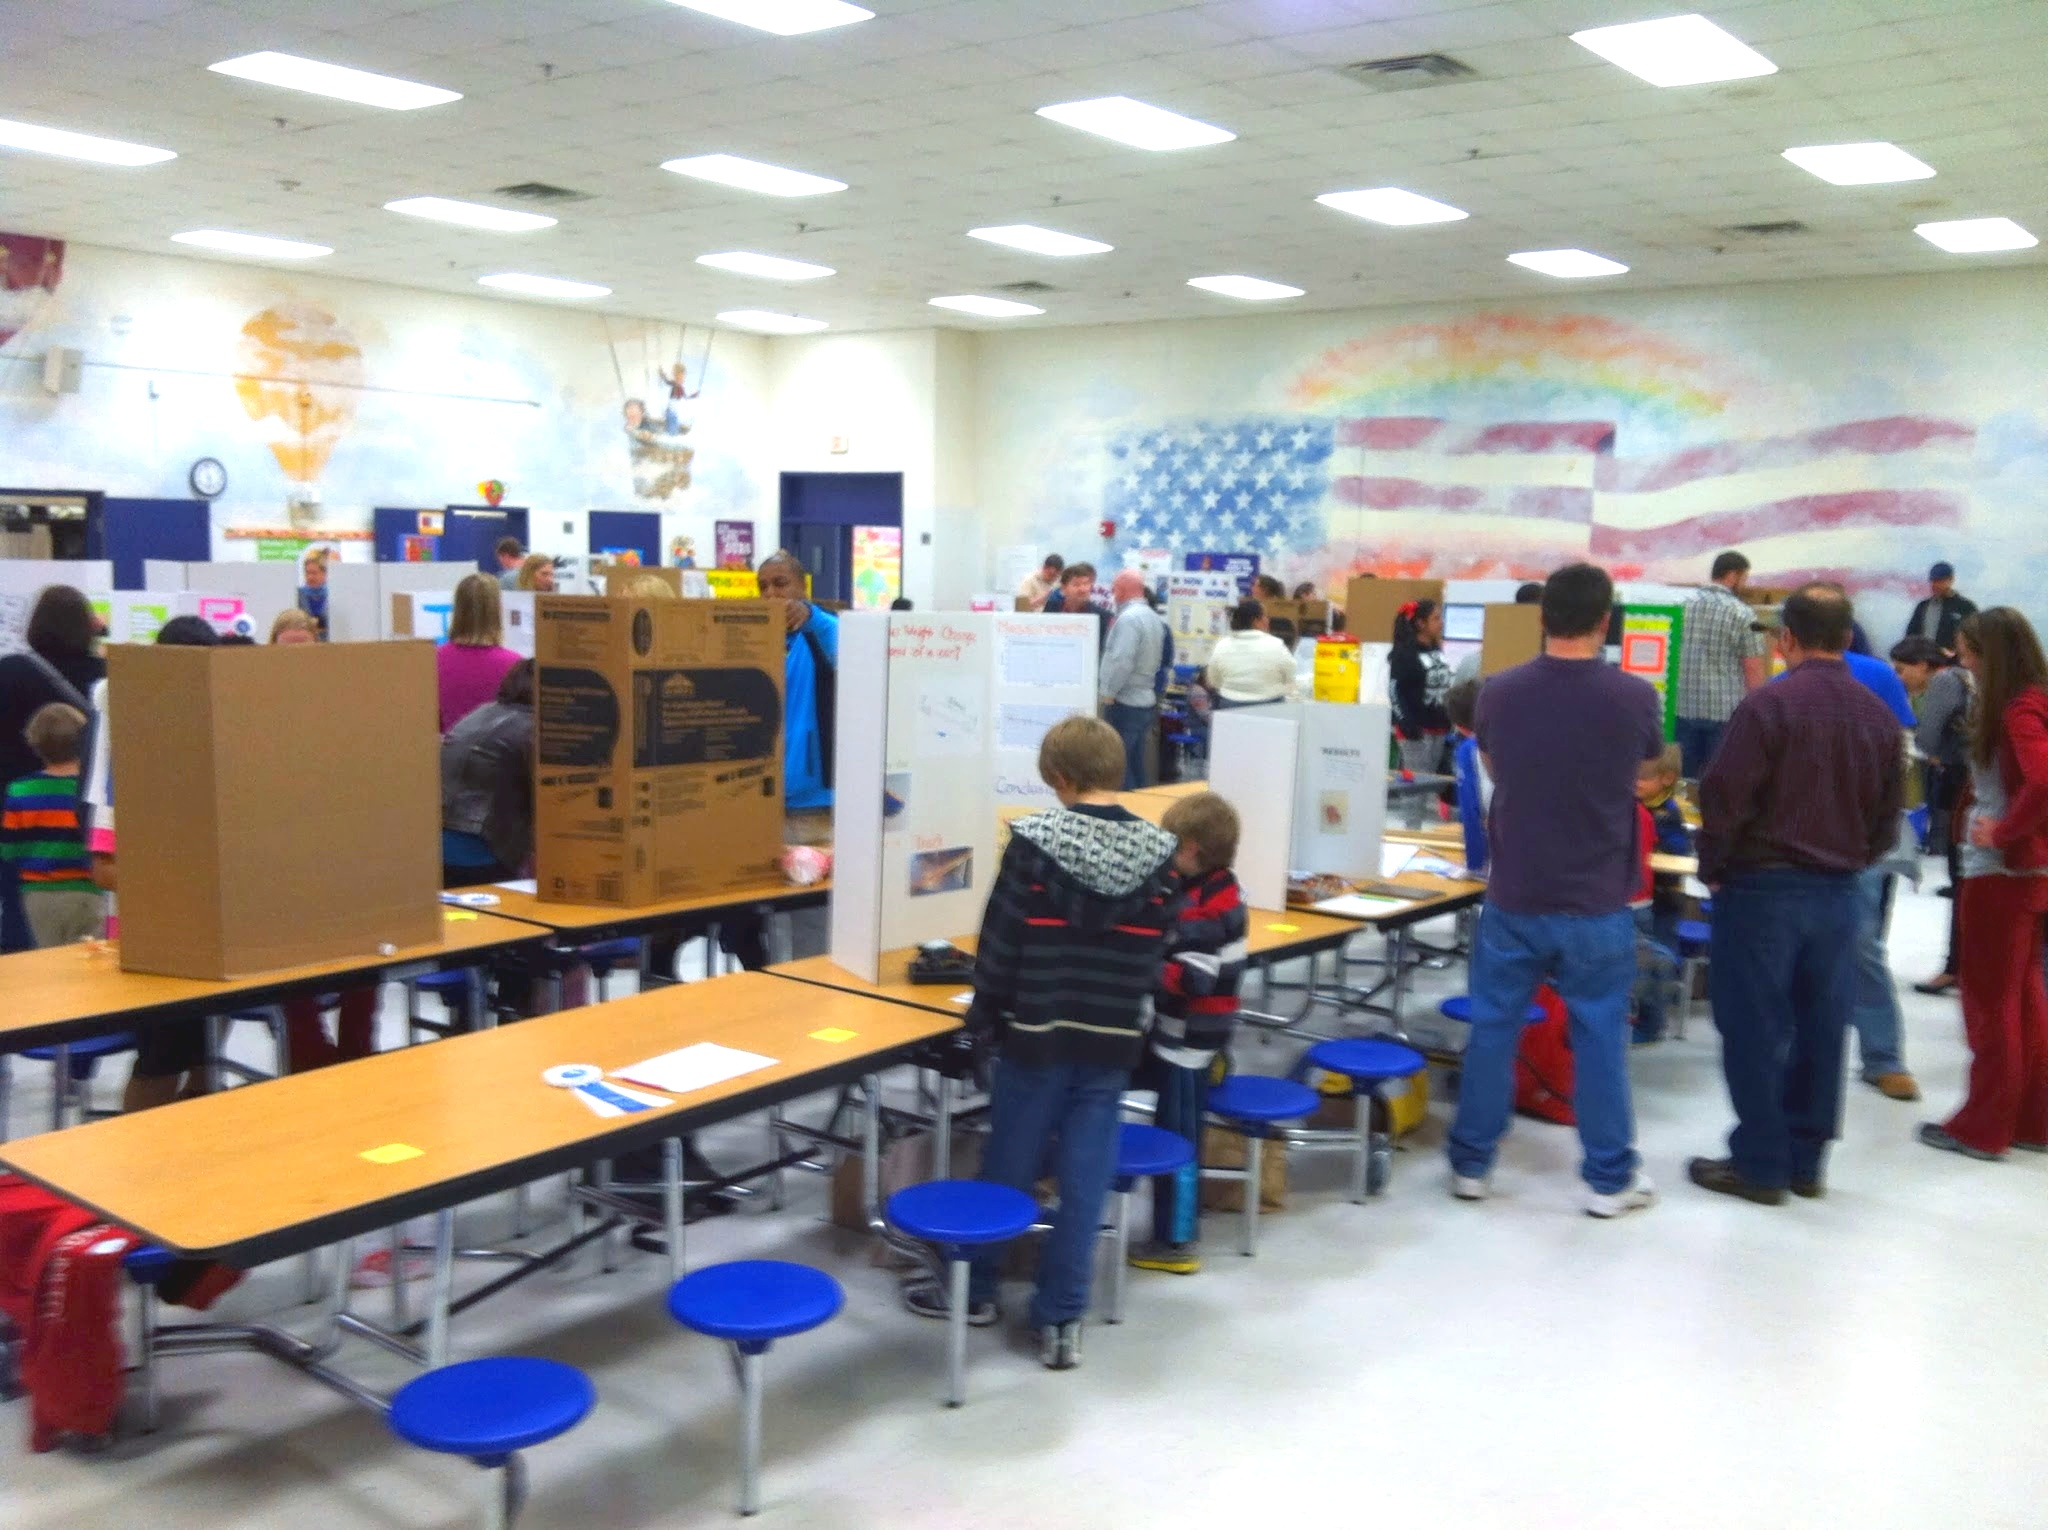 The science expo was in the school cafeteria. It got quite a bit more crowded than this.